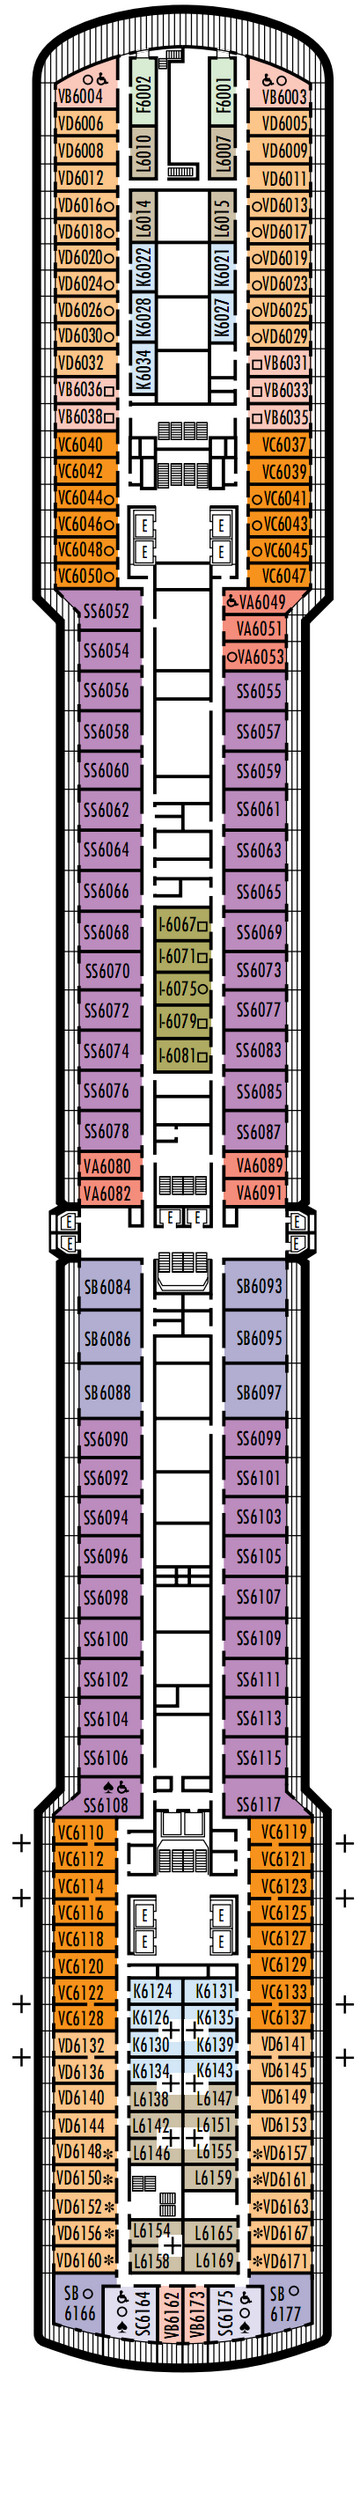 Noordam Deck 6 - Upper Verandah Deck layout